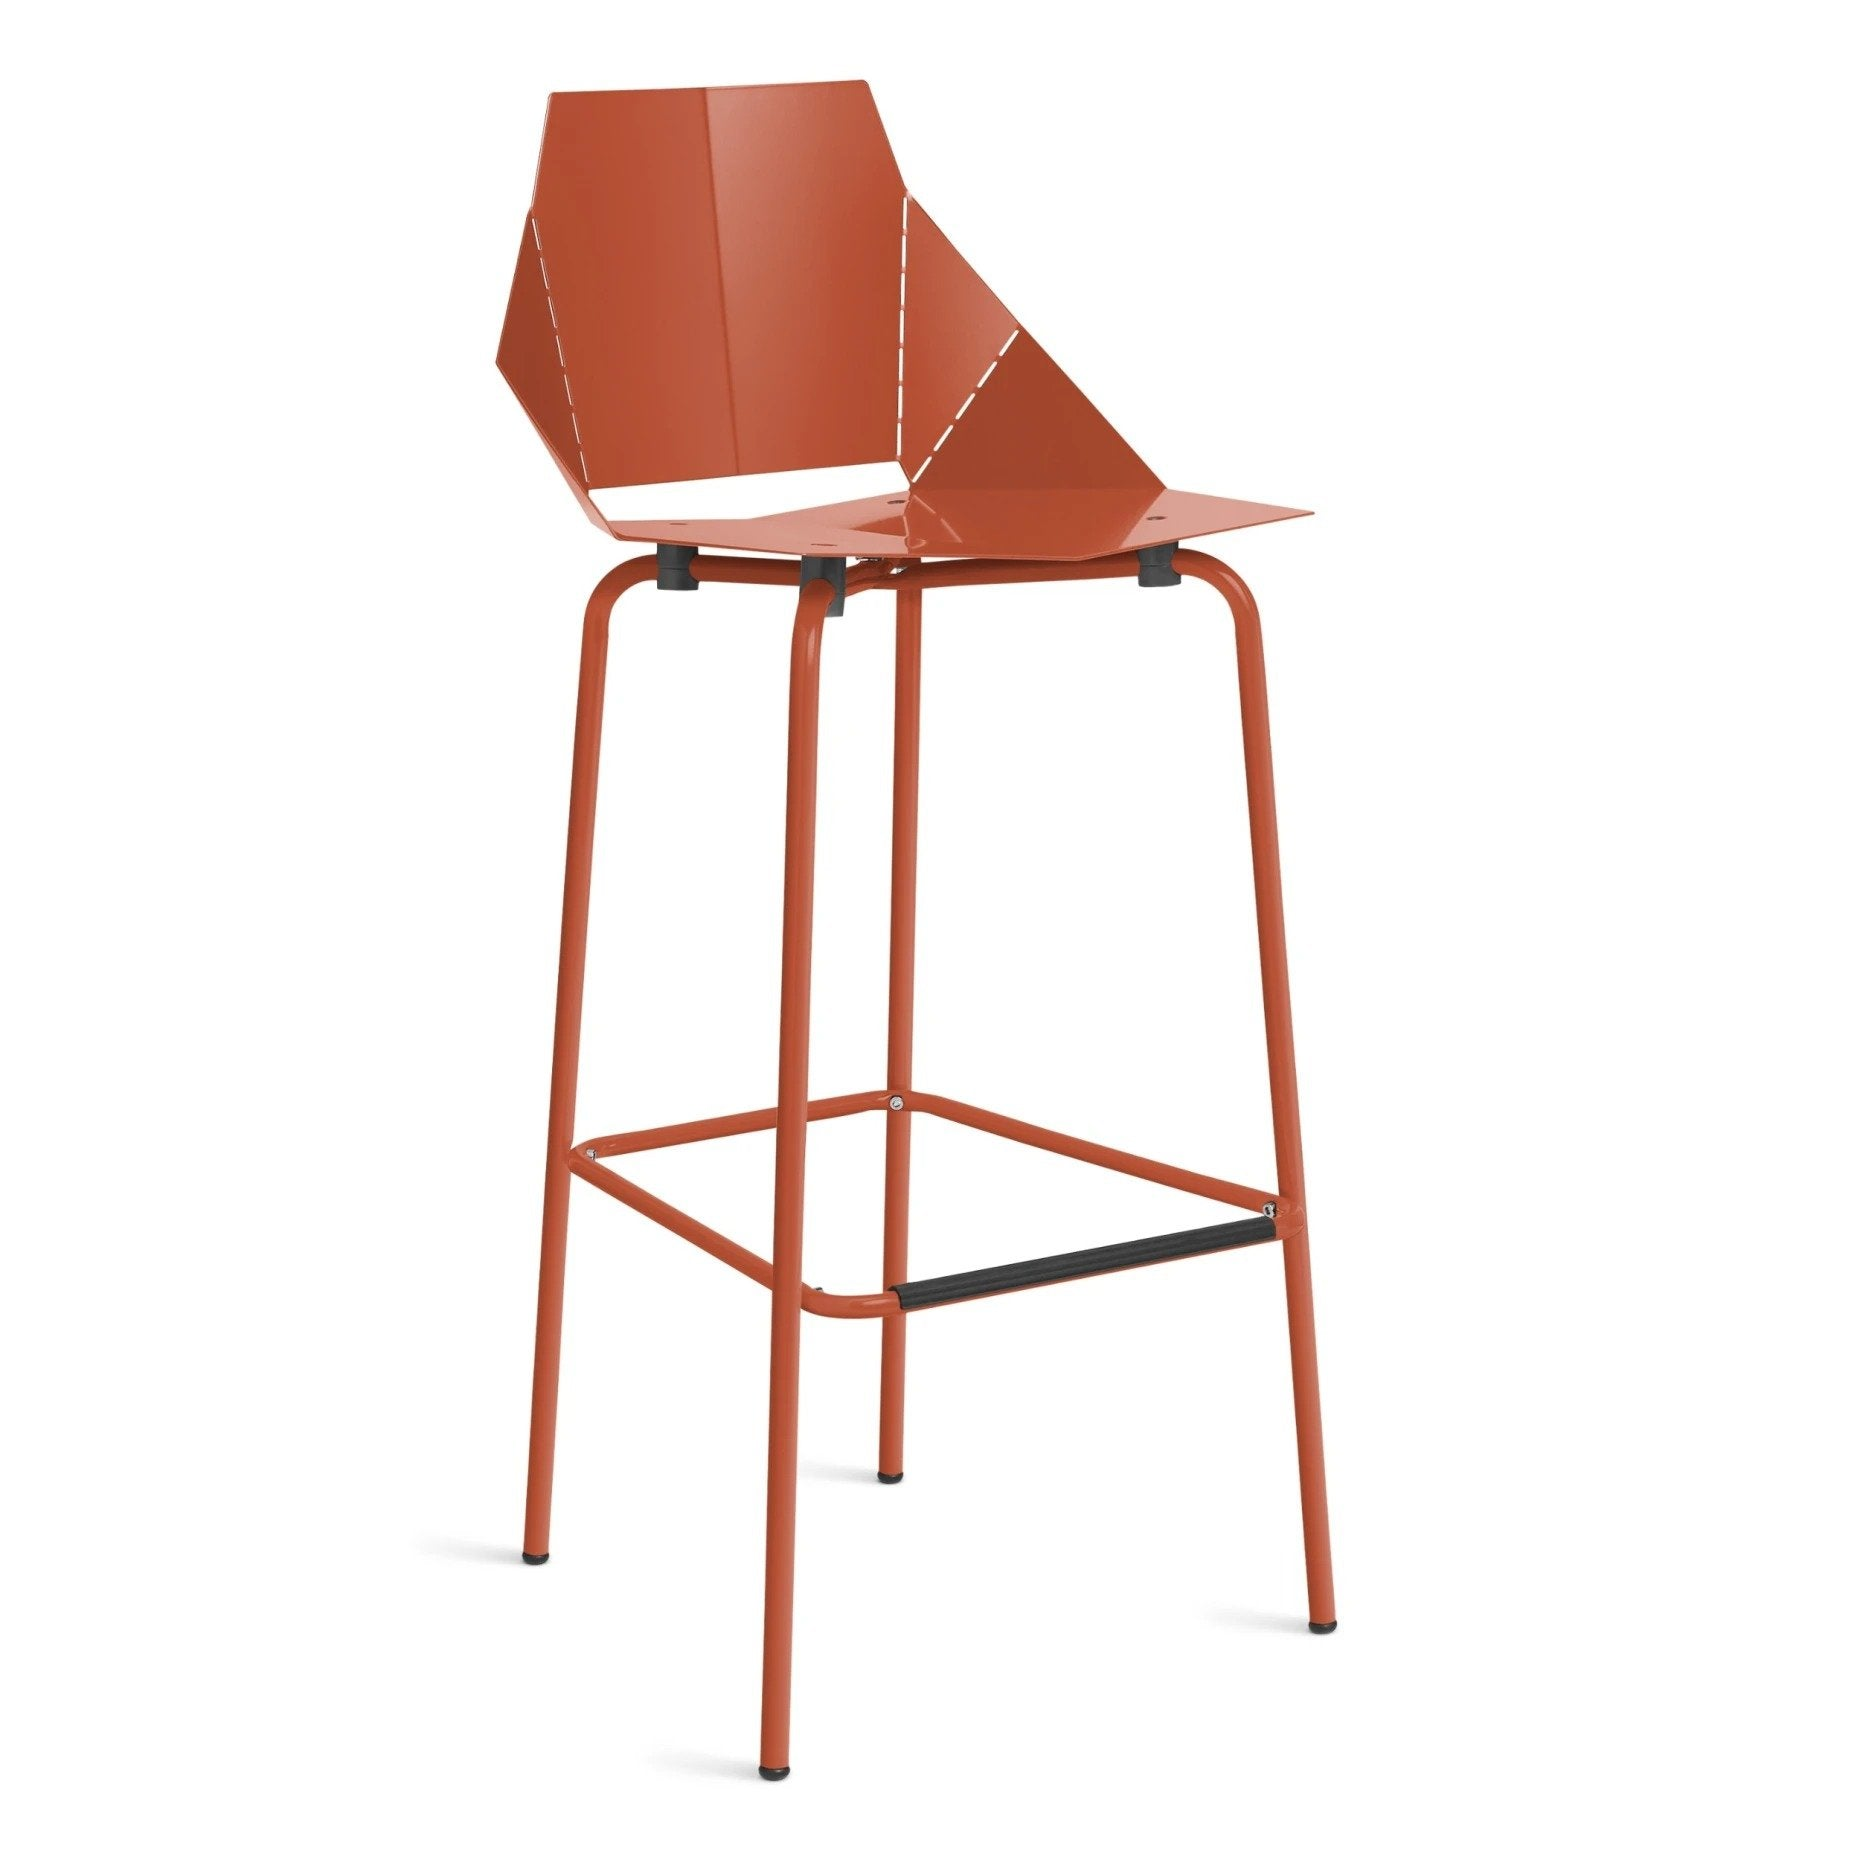 Real Good Bar Stool Barstool Blu Dot Bludot Baltimore Washington DC Modern